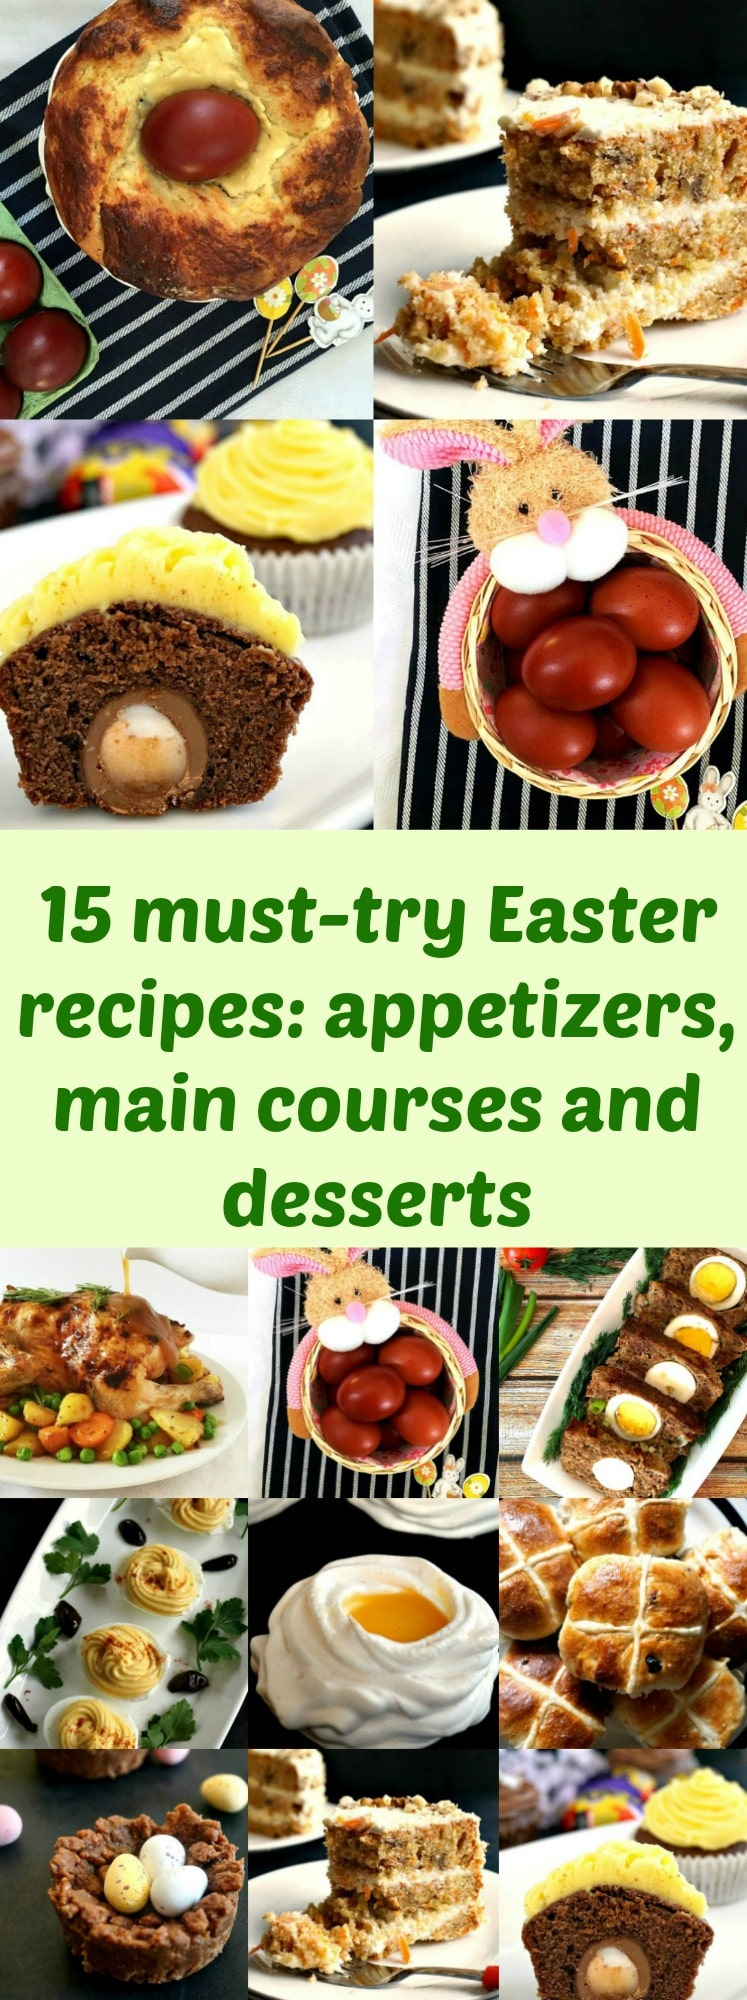 15 must-try Easter recipes: appetizers, main courses and desserts